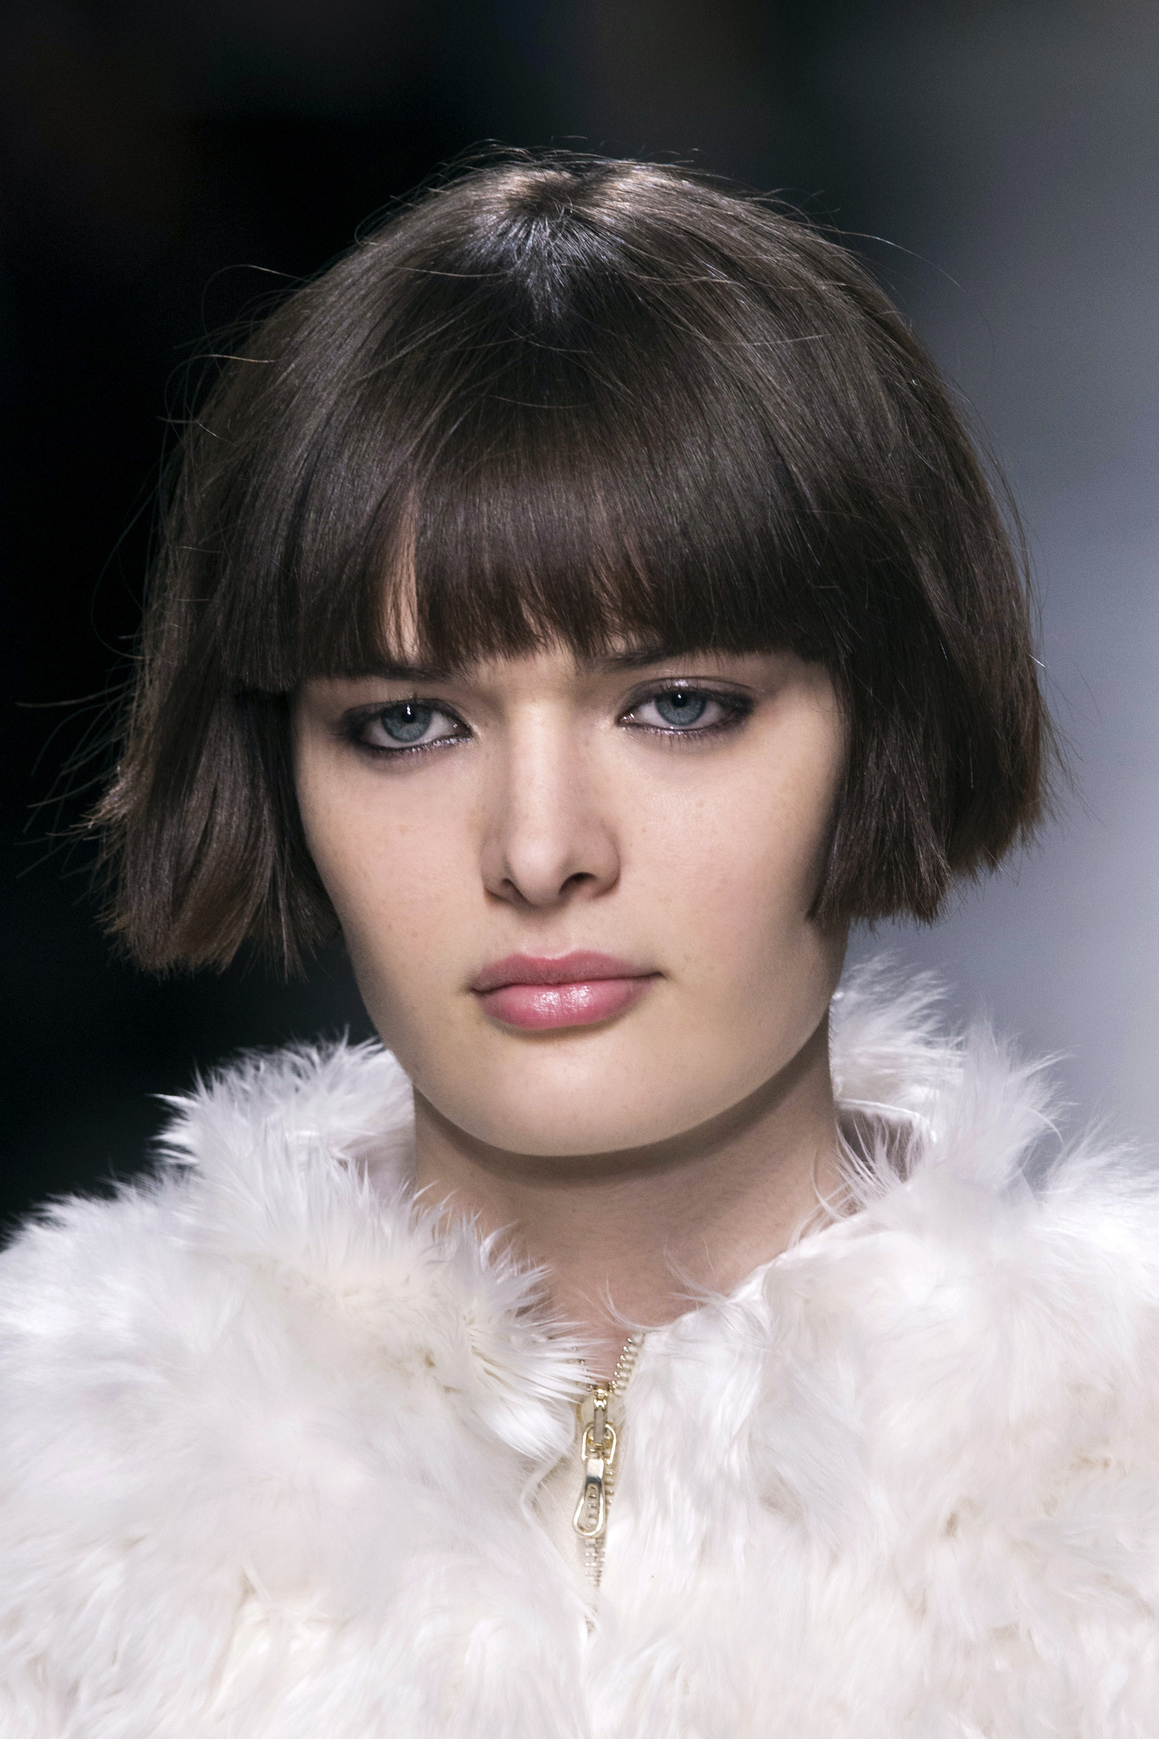 Short blunt bob hairstyle with bangs short hairstyles - Runway Blunt Bob Hairstyles With Bangs Short